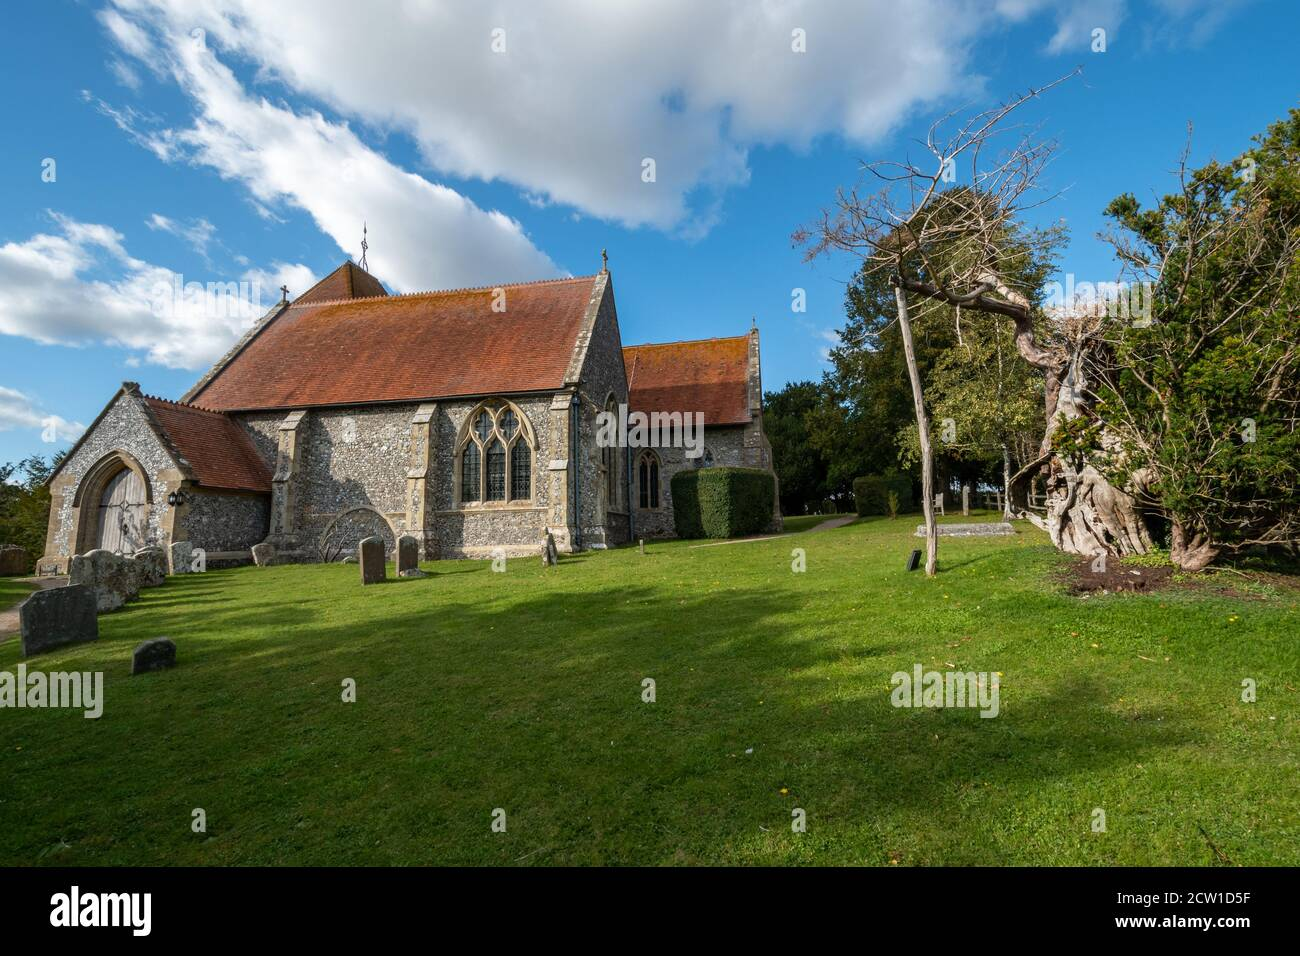 St Mary's Church, a village church in Aldworh, Berkshire, UK, famous for a group of mid-14th-century effigies to members of the de la Beche family. Stock Photo